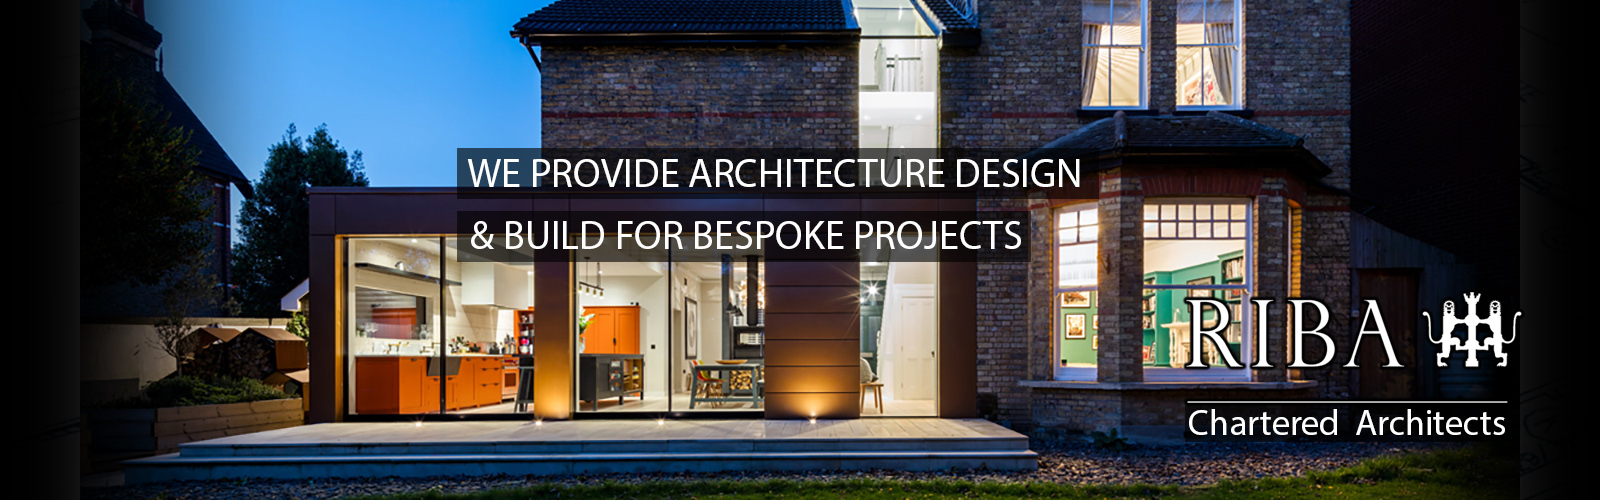 Architects in Tolworth